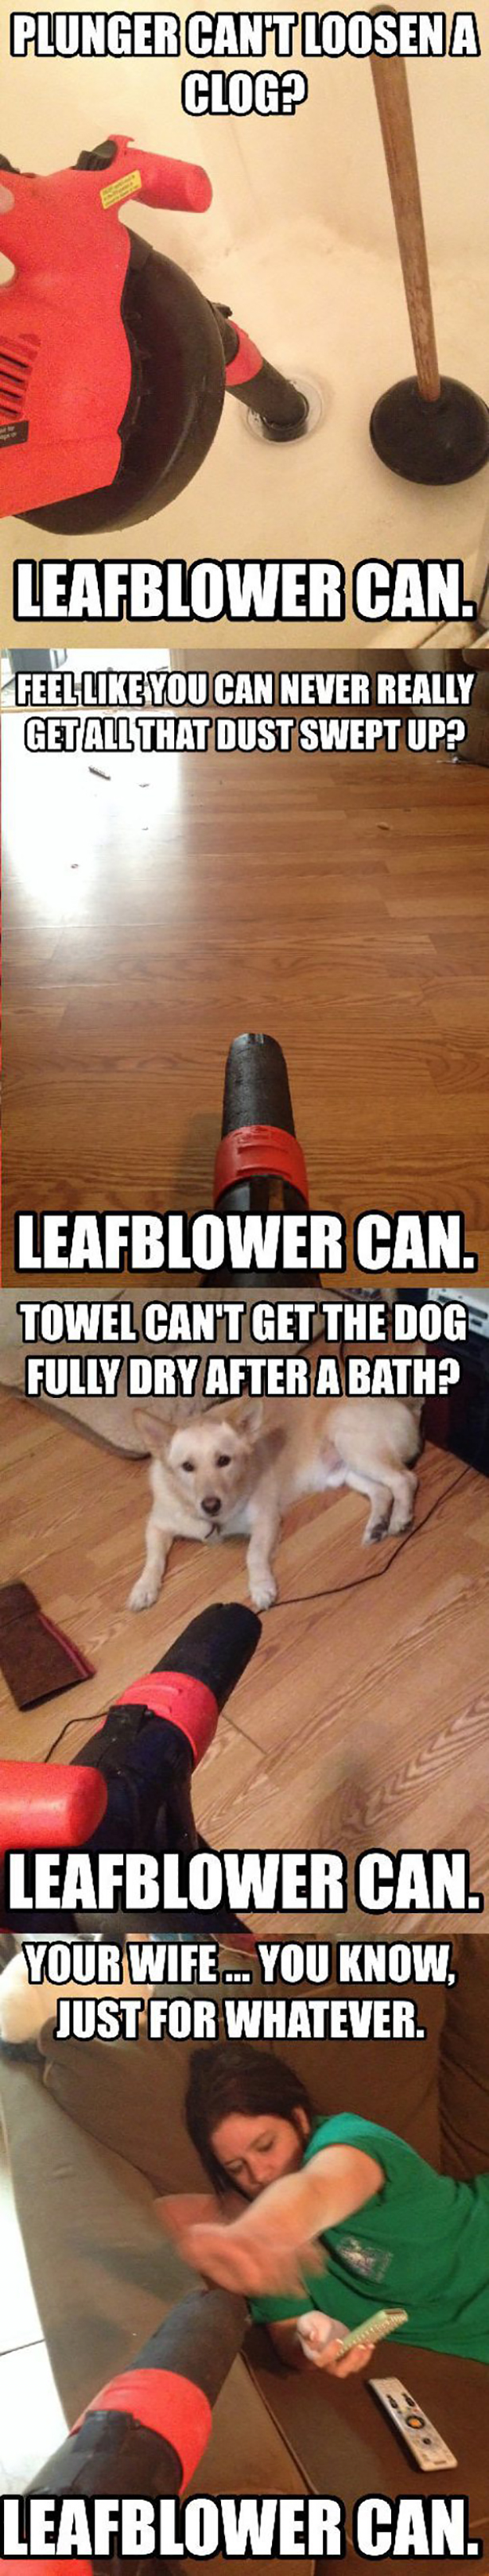 LEAFBLOWER CAN